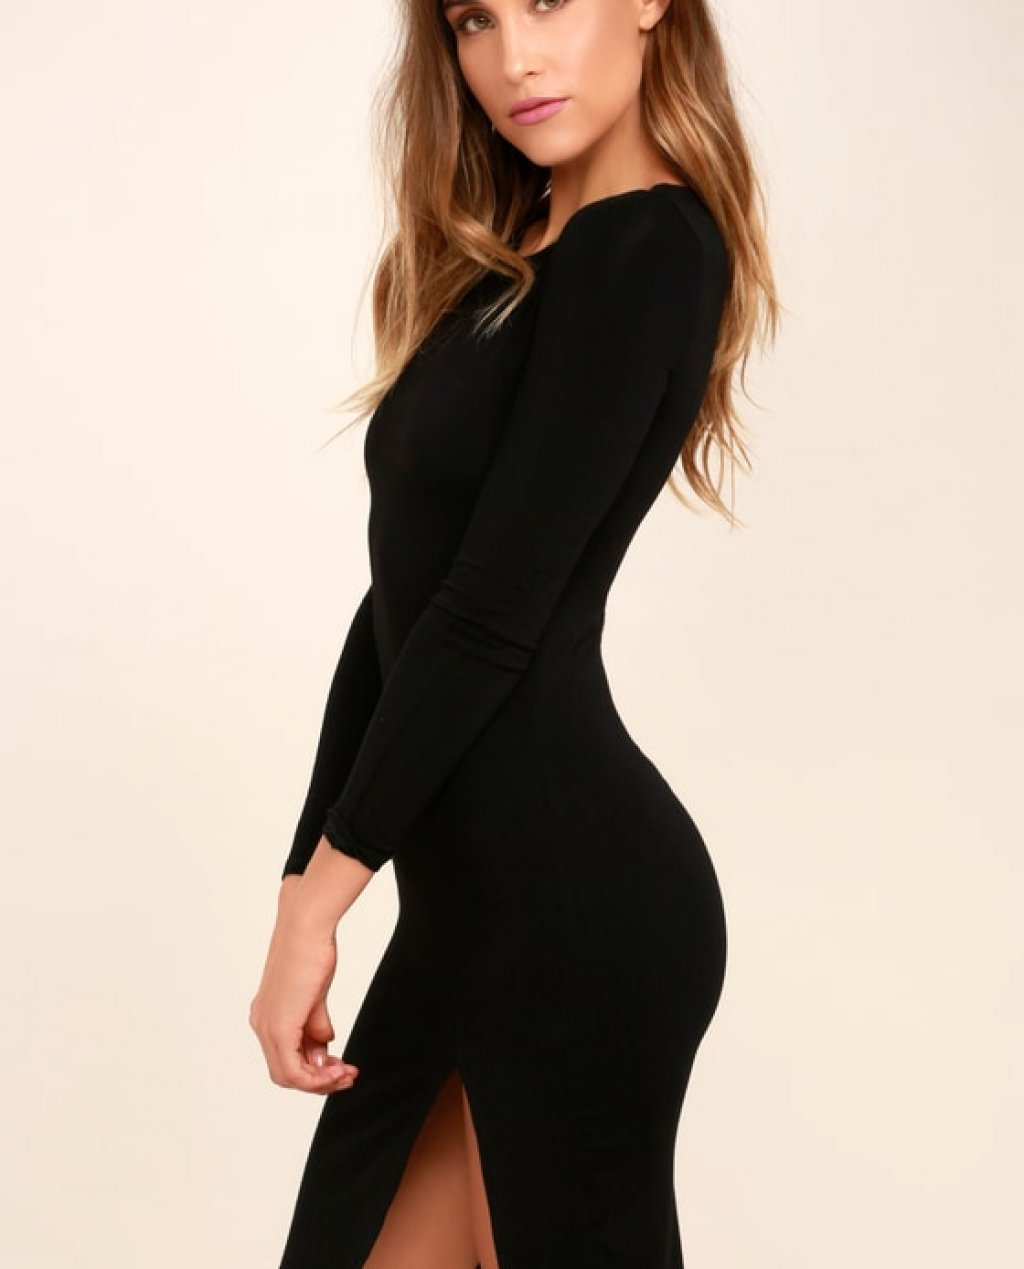 How I Wonder Black Long Sleeve Midi Dress